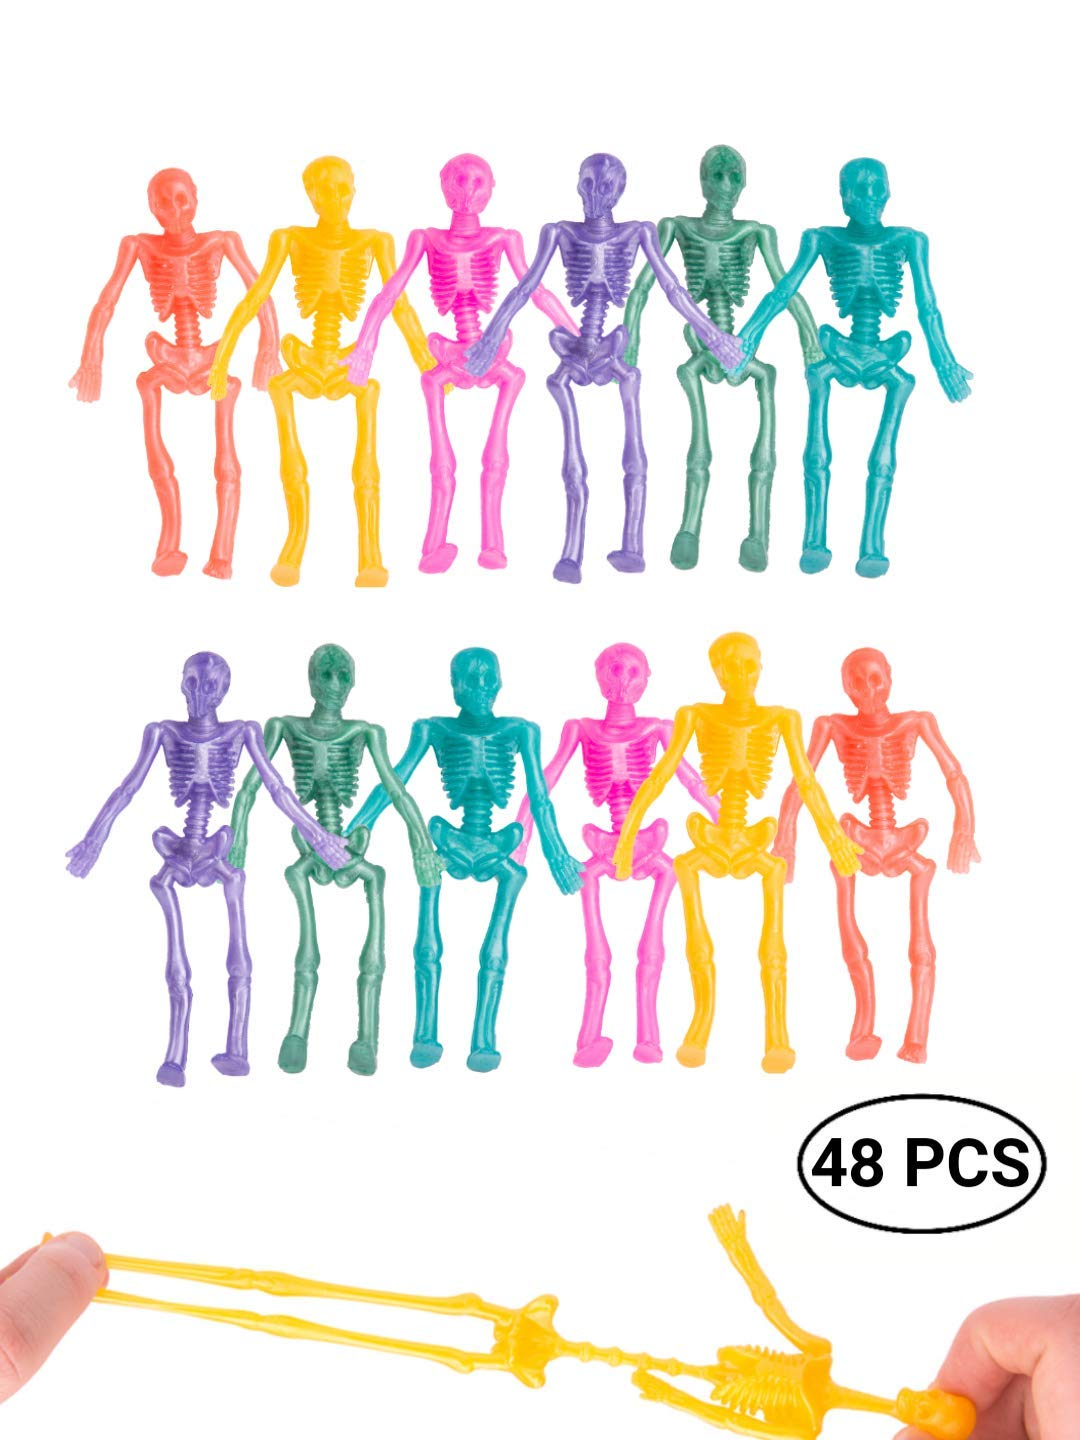 UpBrands 48 Pack Stretchy Skeleton 4 inches Bulk Set 8 Glitter Colors, Kit for Birthday, Halloween Party Favors for Kids, Goodie Bags, Easter Egg Basket, Pinata Filler, Small Toys Classroom Prizes by UpBrands